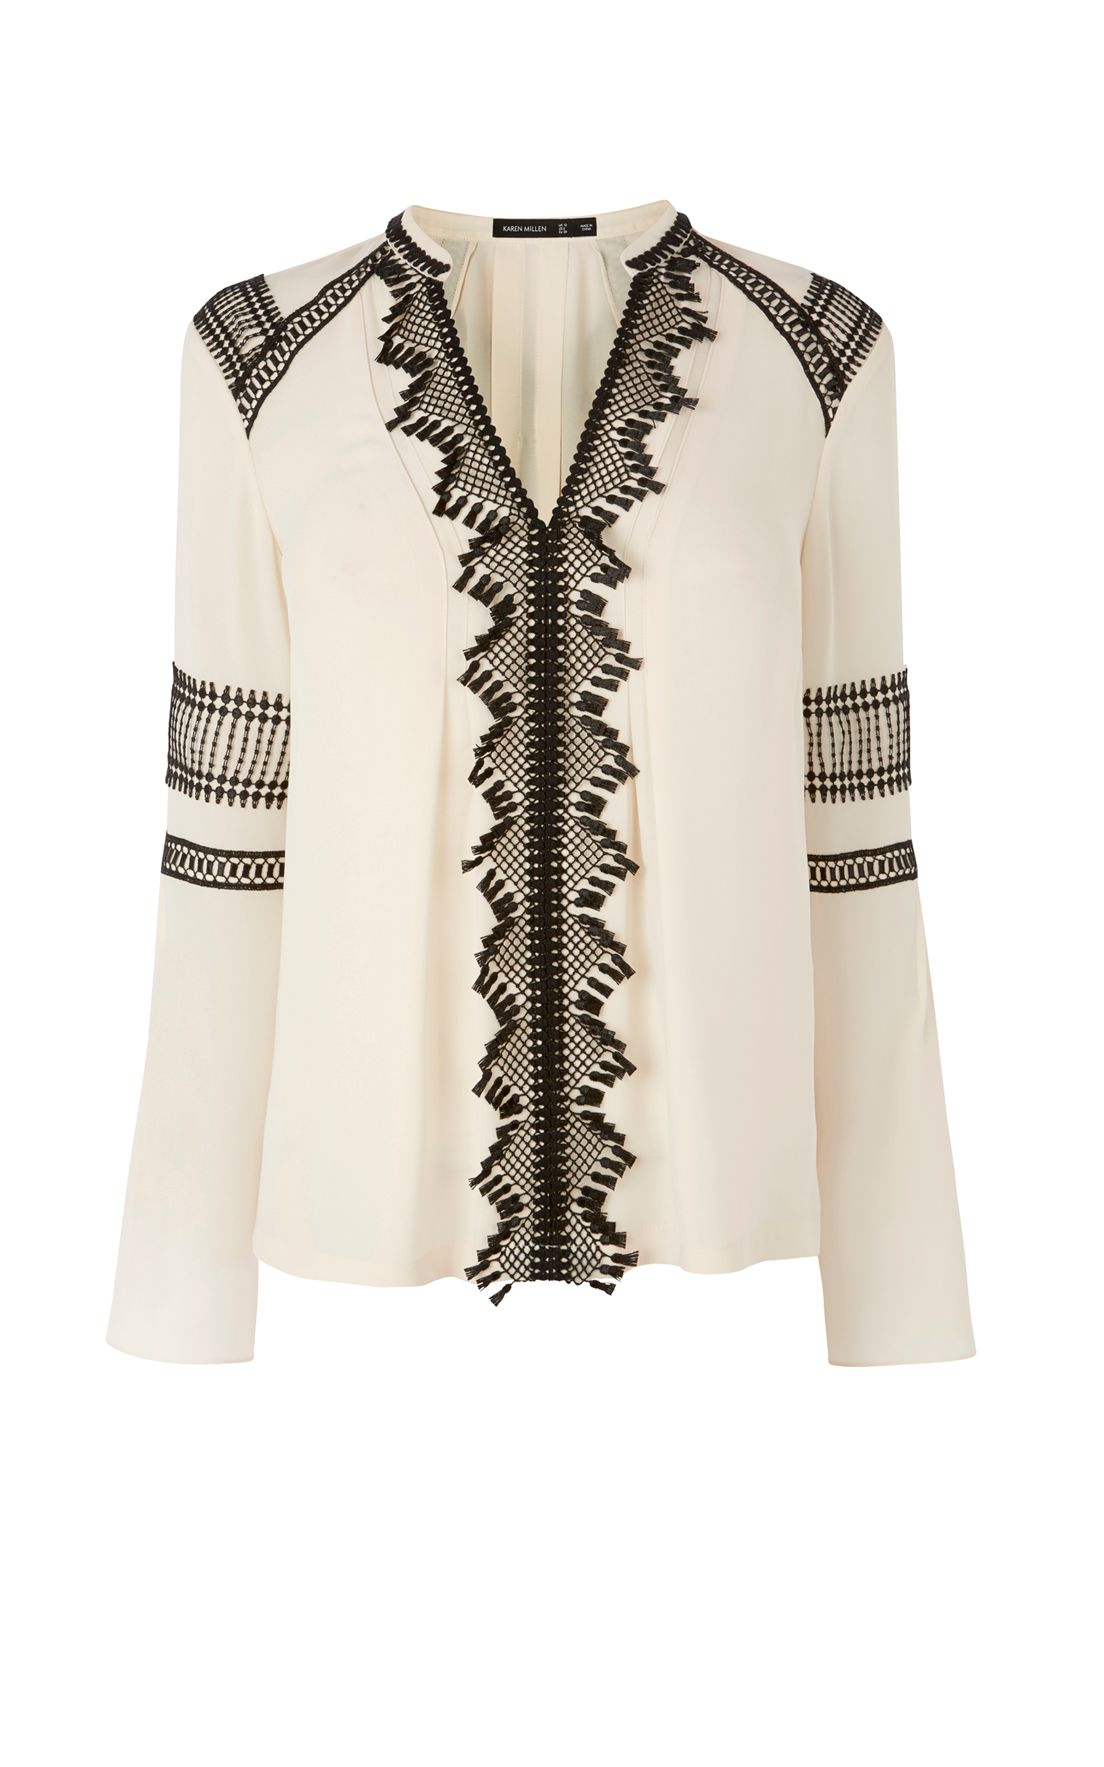 Karen Millen Lace Detail Blouse, White